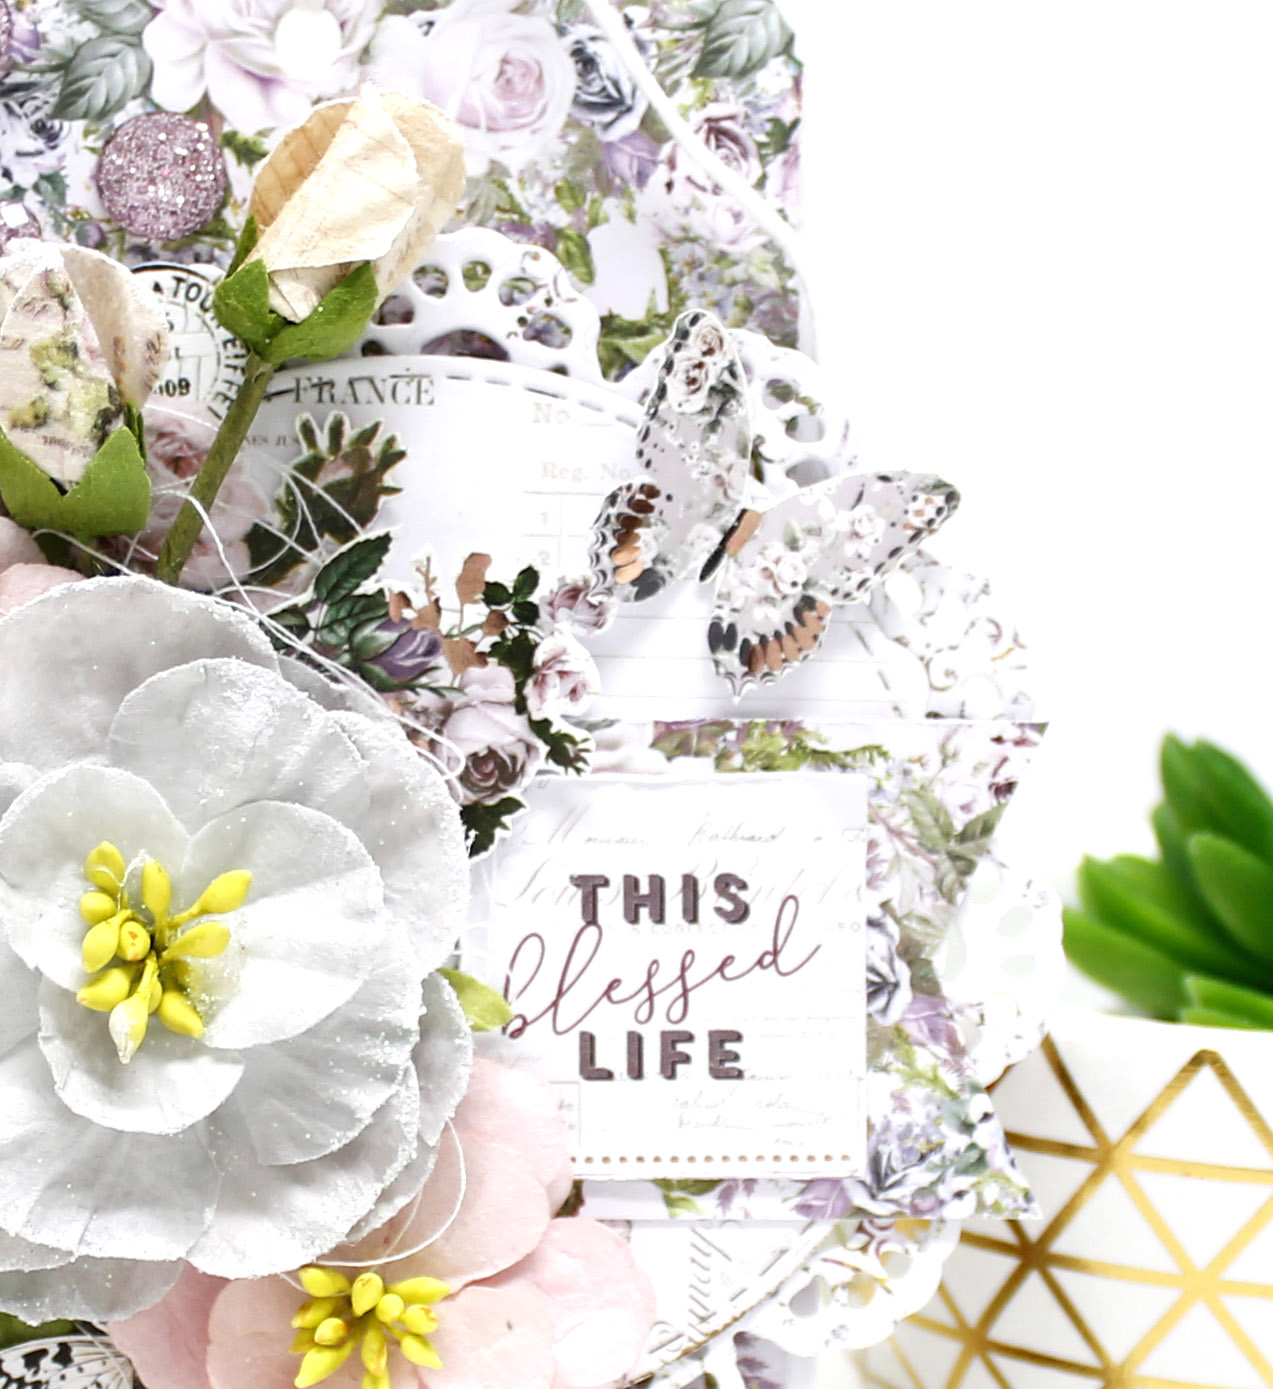 This Blessed Life Tag By Anita Bownds (3).jpg